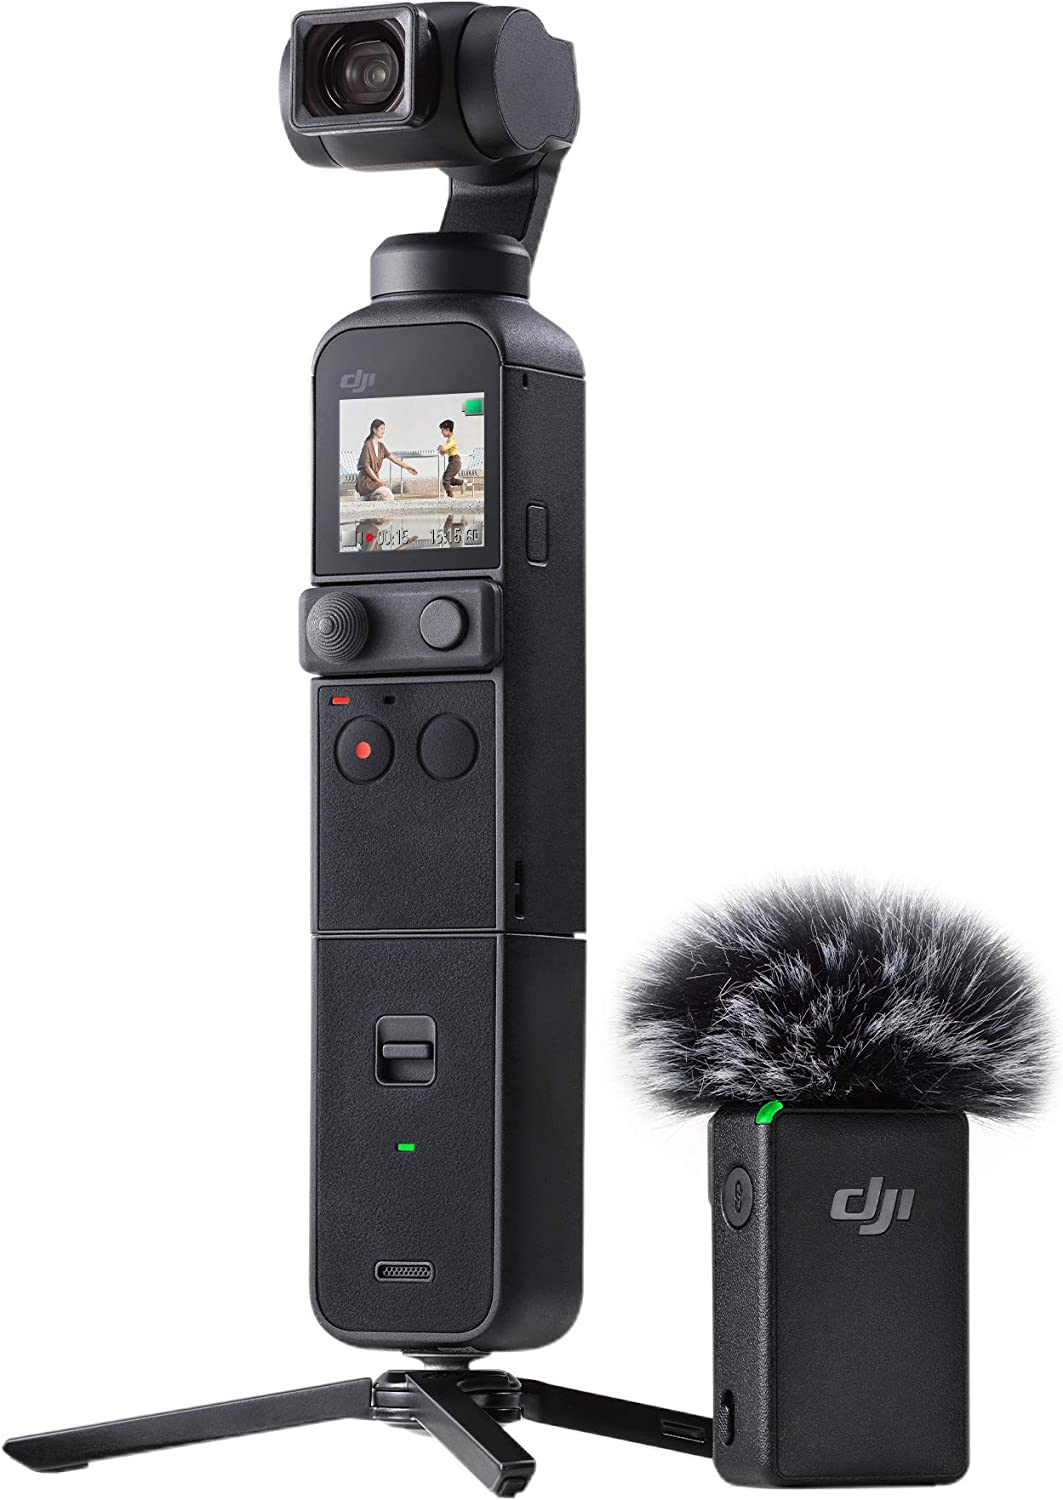 DJI Osmo Pocket 2 pocket friendly camera